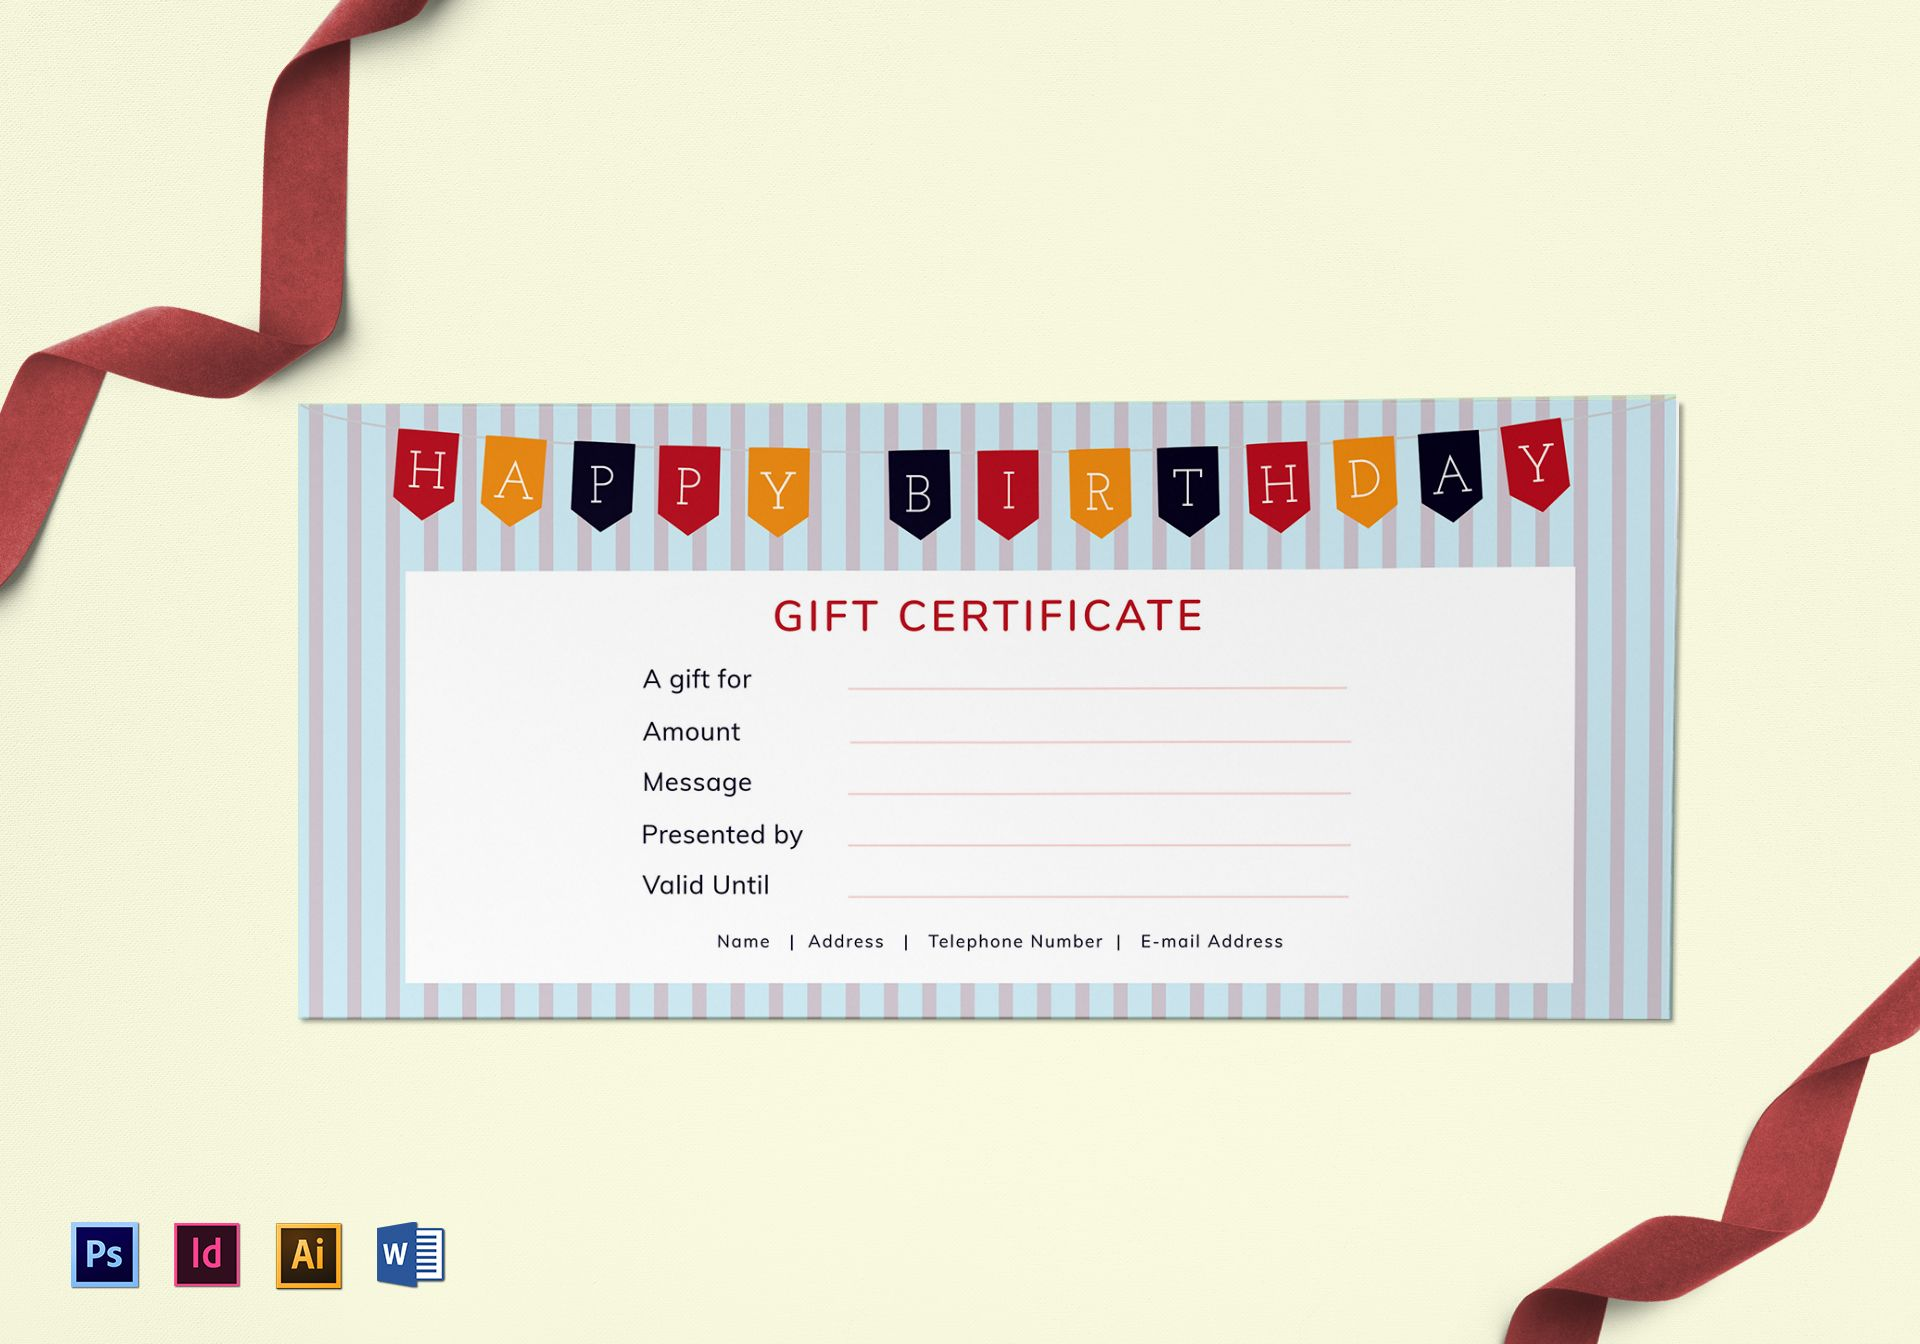 Happy Birthday Gift Certificate Design Template In Psd Word